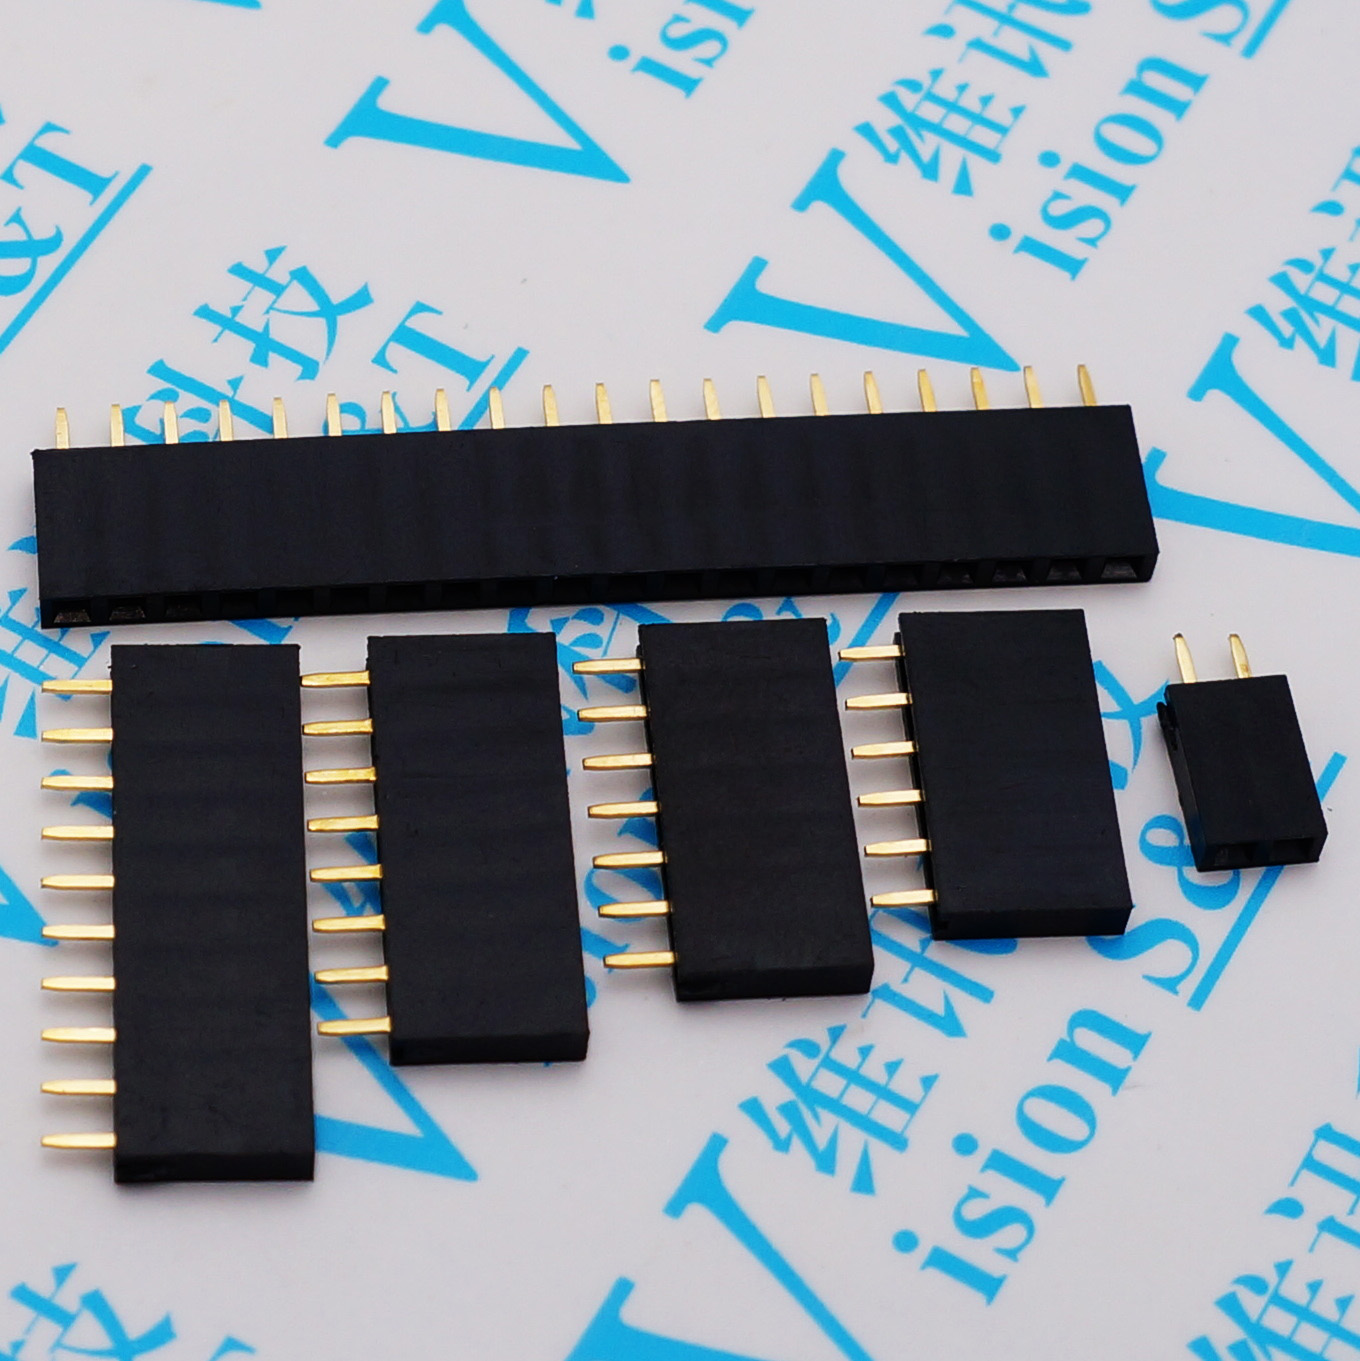 Pitch 2.54mm 2/3/4/<font><b>5</b></font>/6/7/8/9/10/11/12/13/14/15/16/20/40 Pin Stright Female Single Row Pin Header Strip PCB Connector image